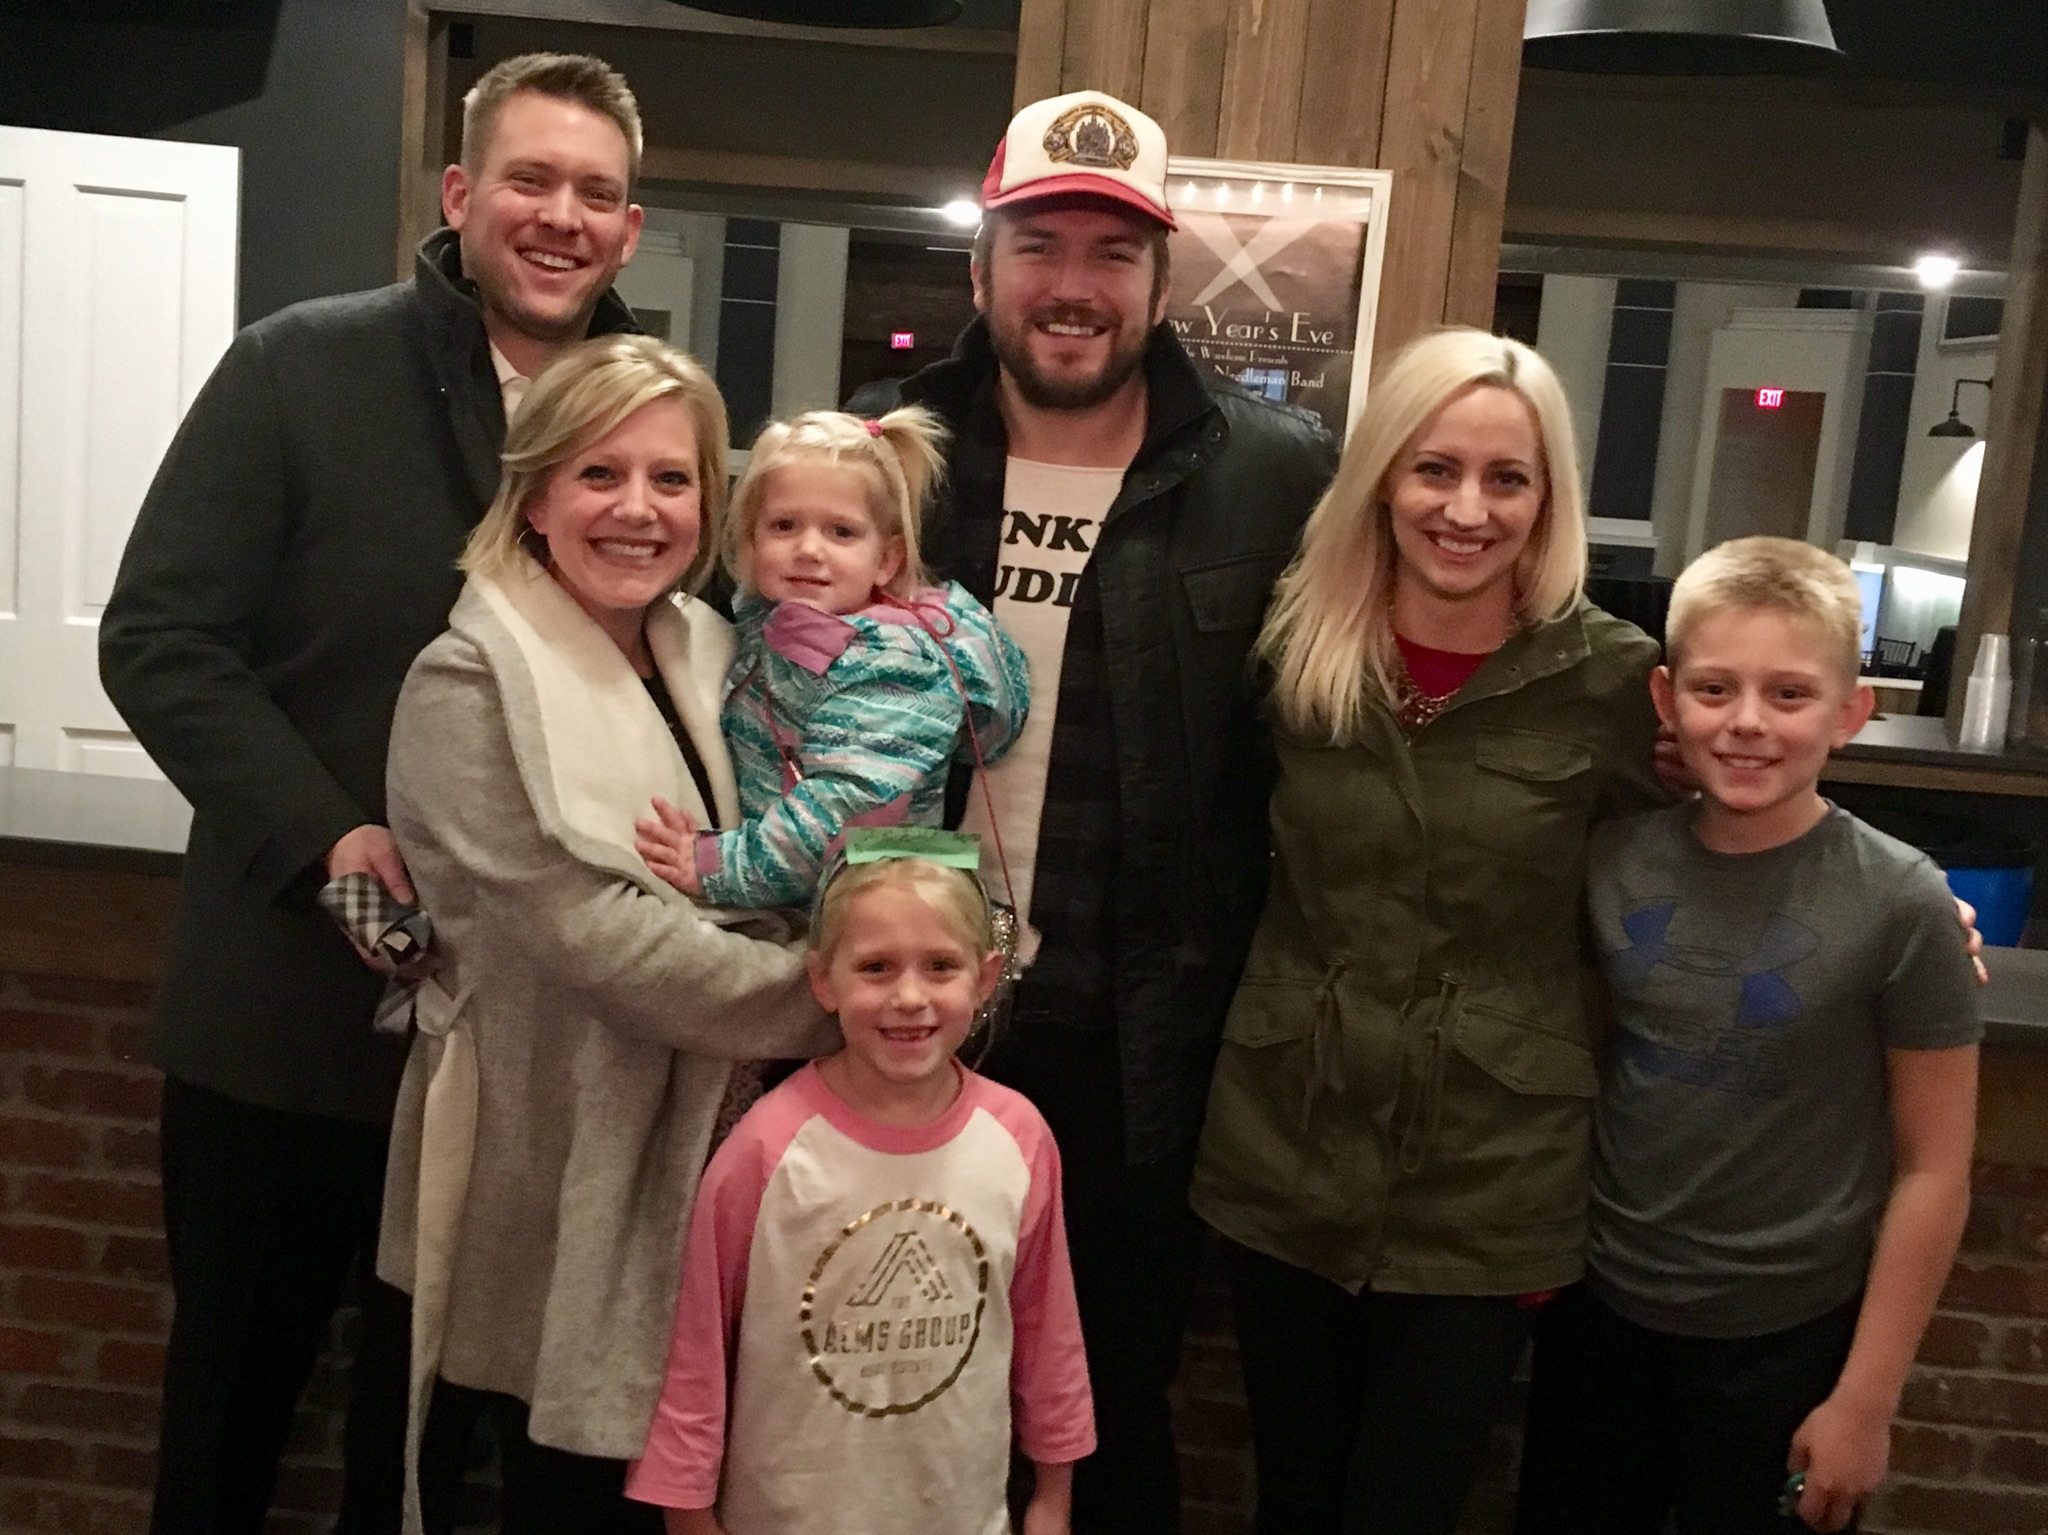 The Alms Group's Mike Goodpasture and his family, with Logan and his wife, Jill.